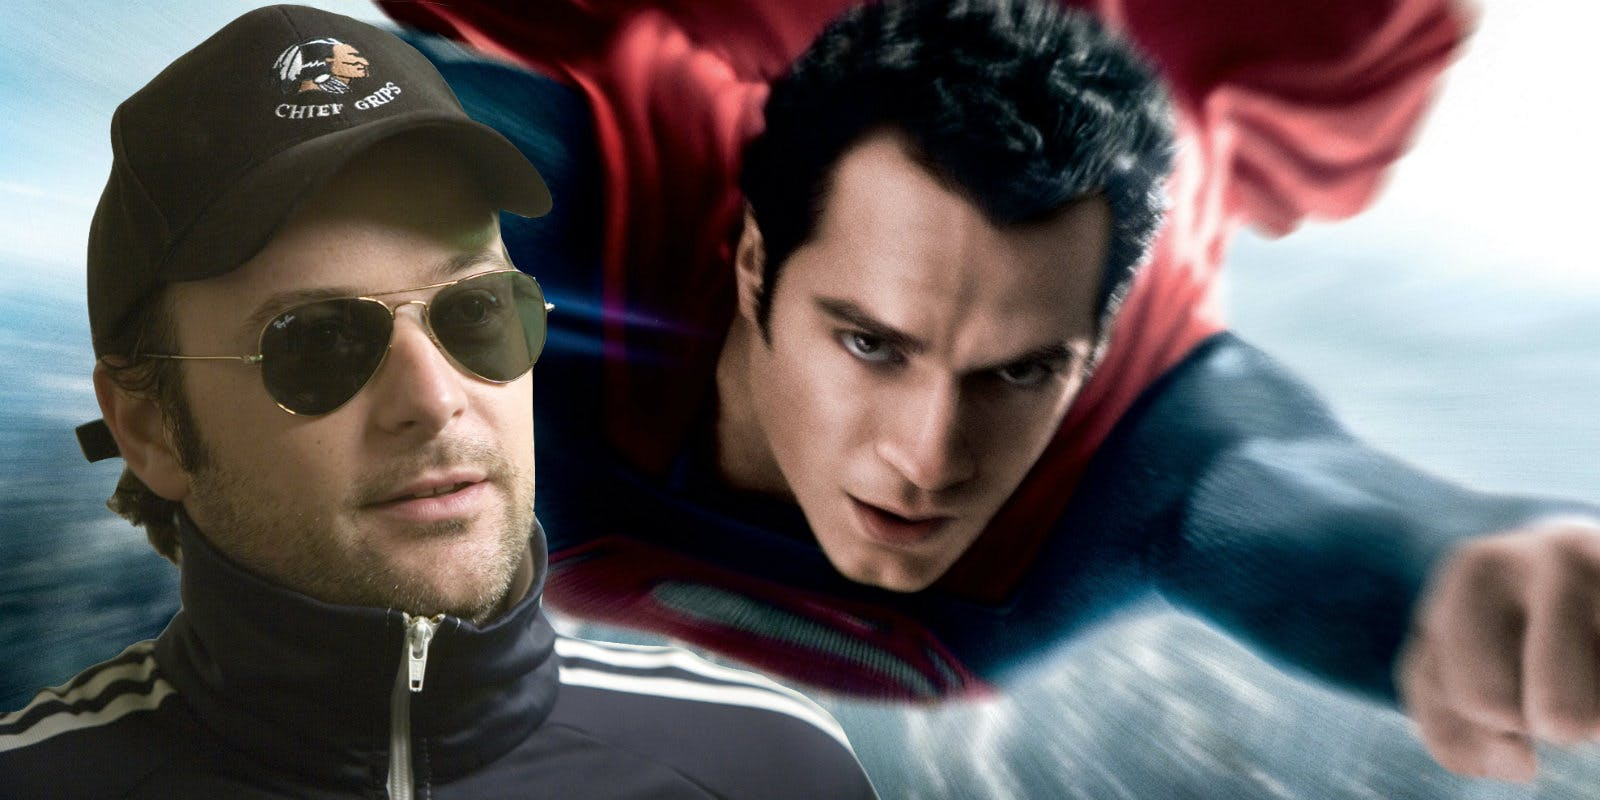 Kingsman Director Matthew Vaughn Would Rather Work With DC Than Marvel